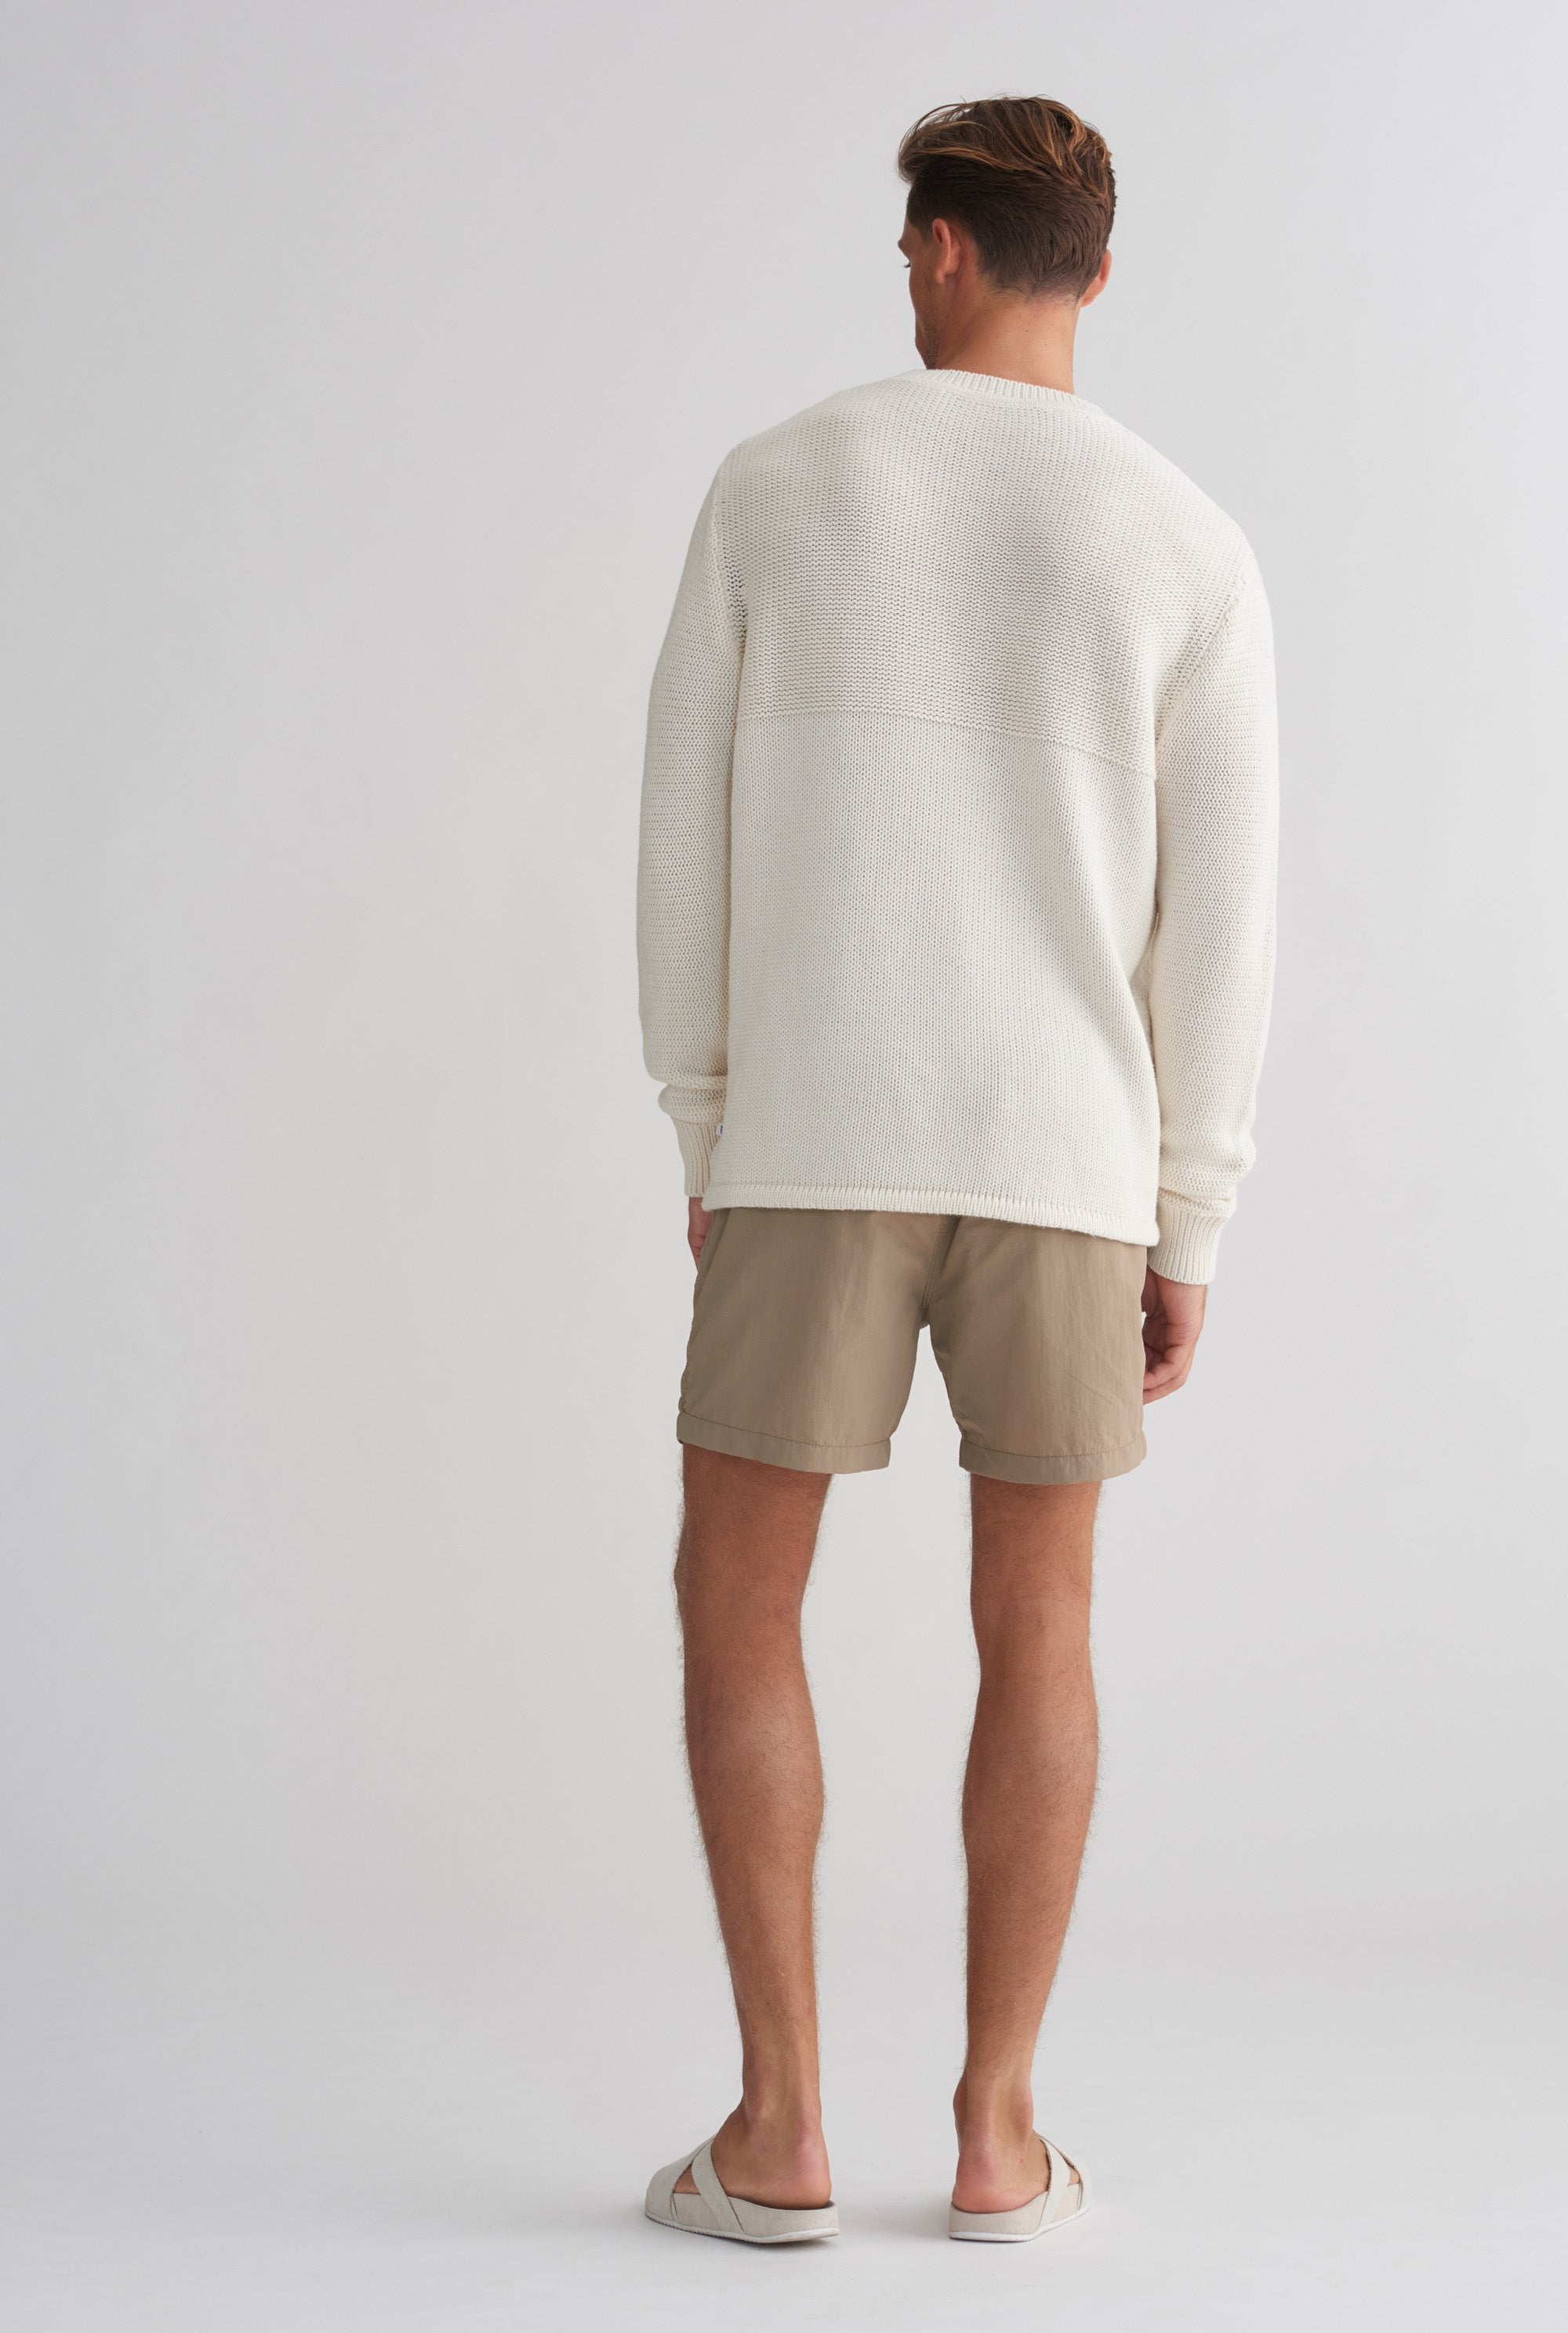 Wave Knit Sweater - Off White